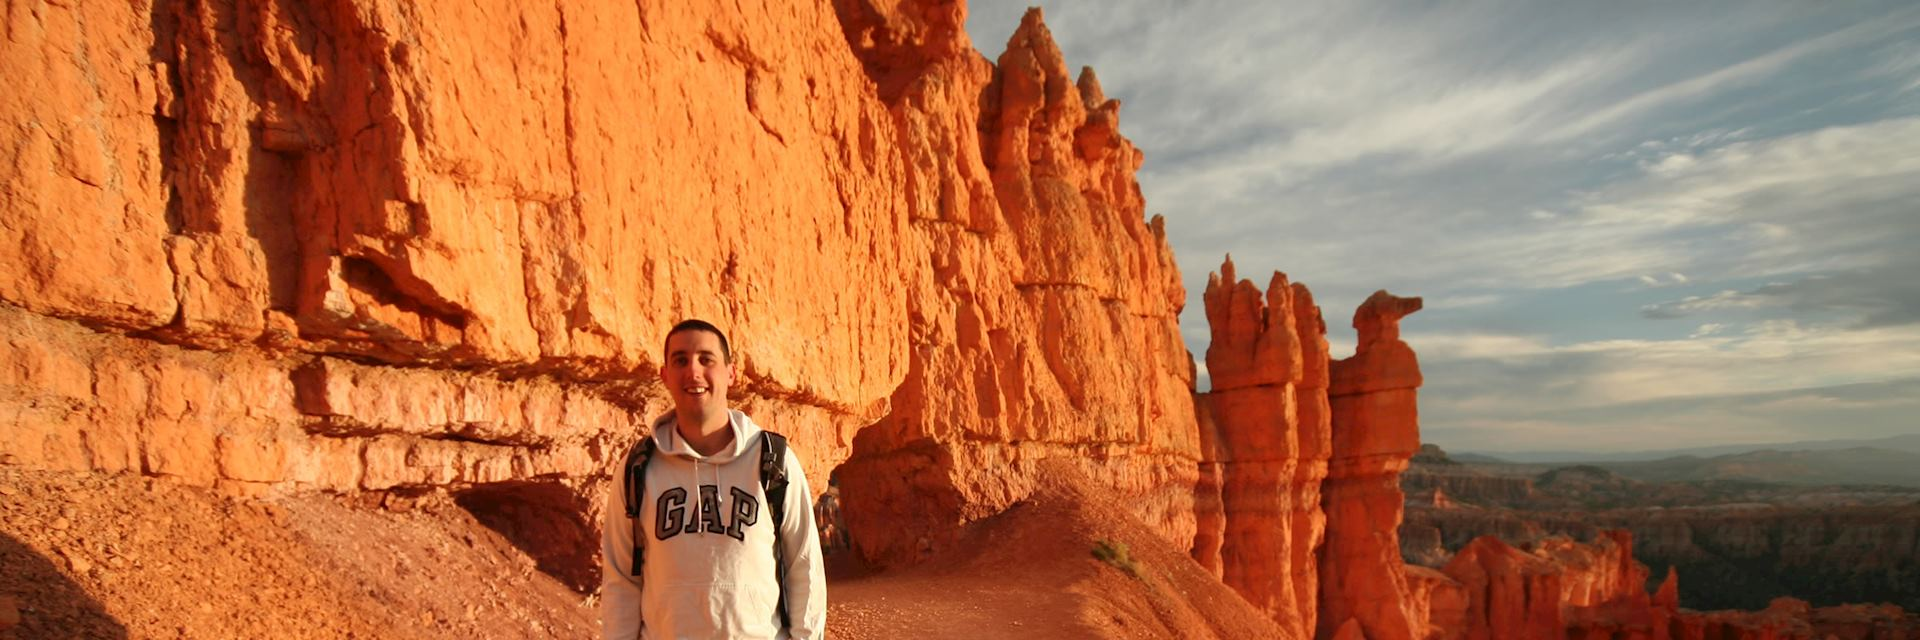 Dave in Bryce Canyon, the USA